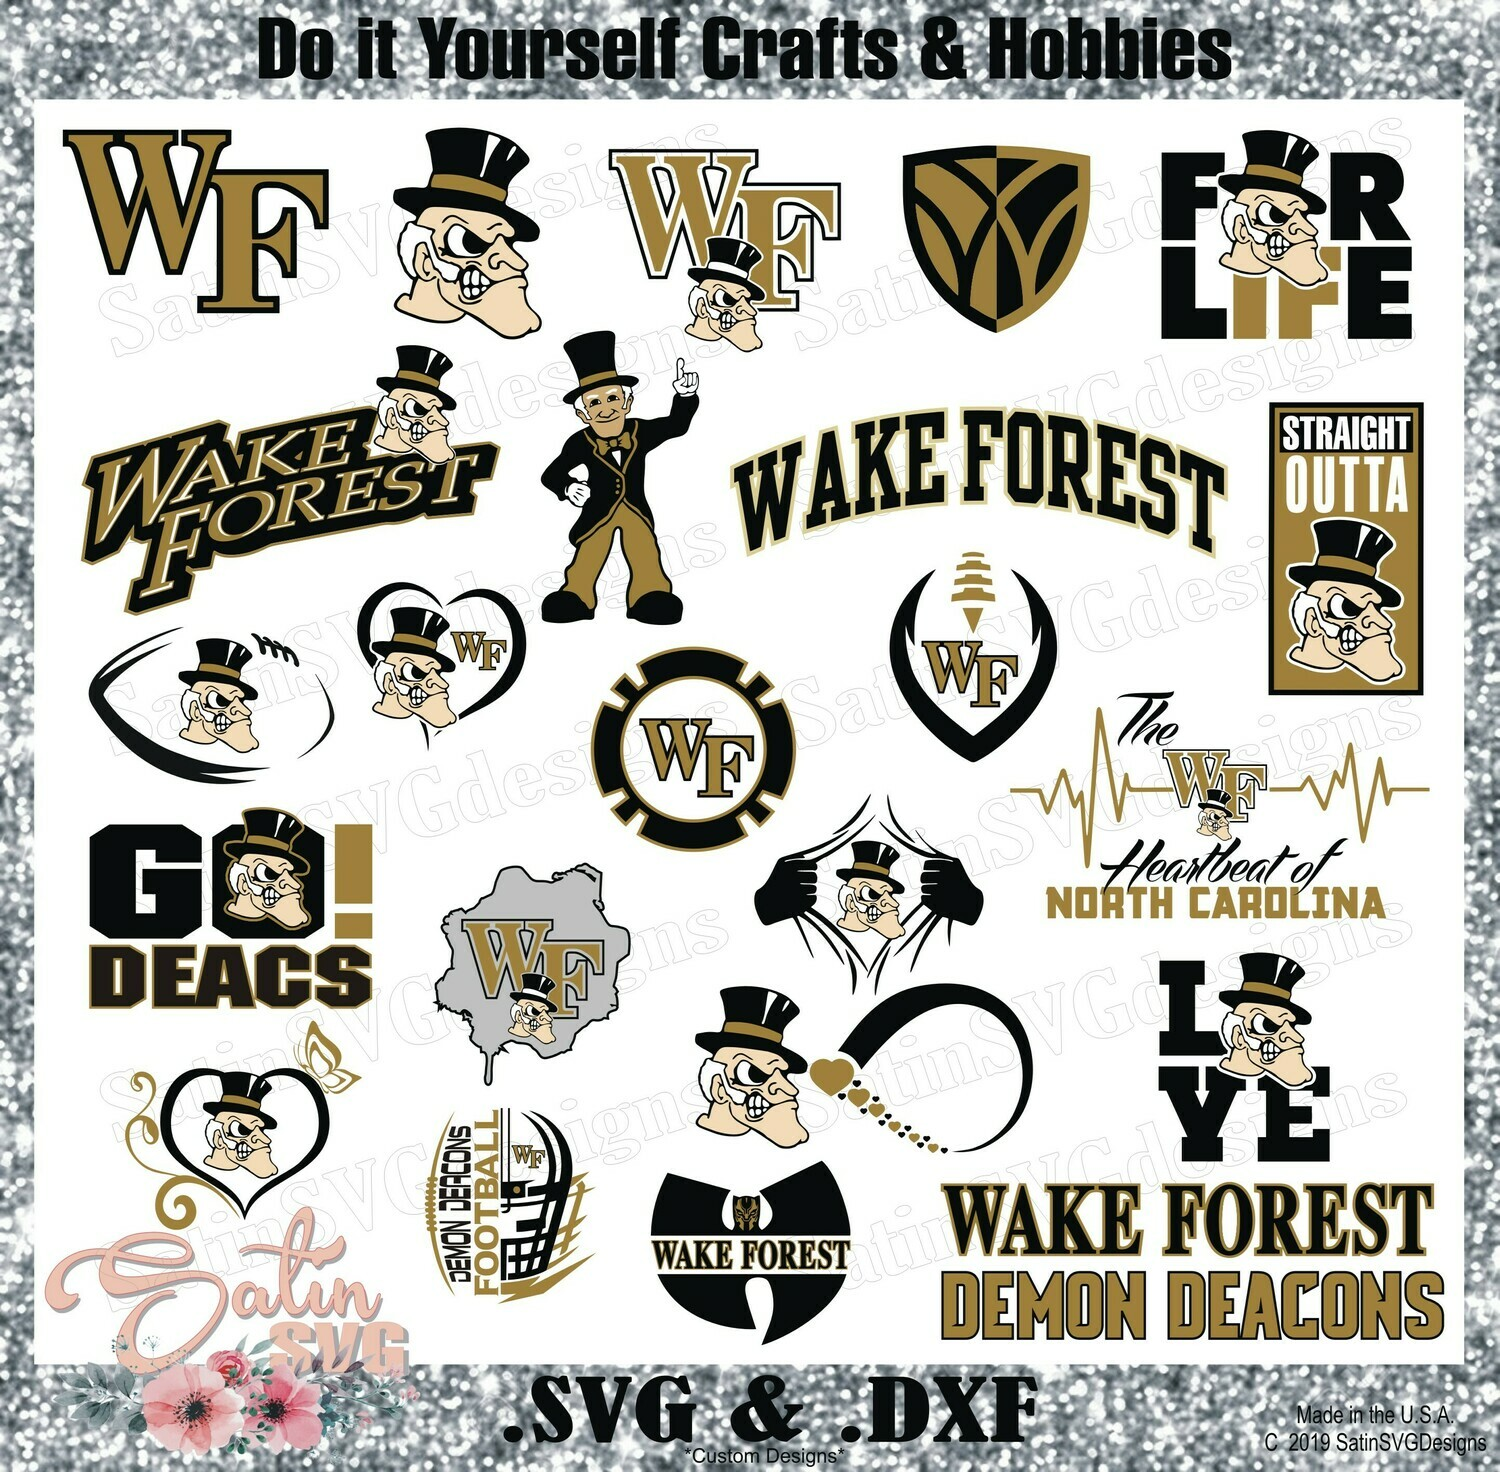 Wake Forest Demon Deacons NEW Custom Central Florida University Designs. SVG Files, Cricut, Silhouette Studio, Digital Cut Files, Infusible Ink